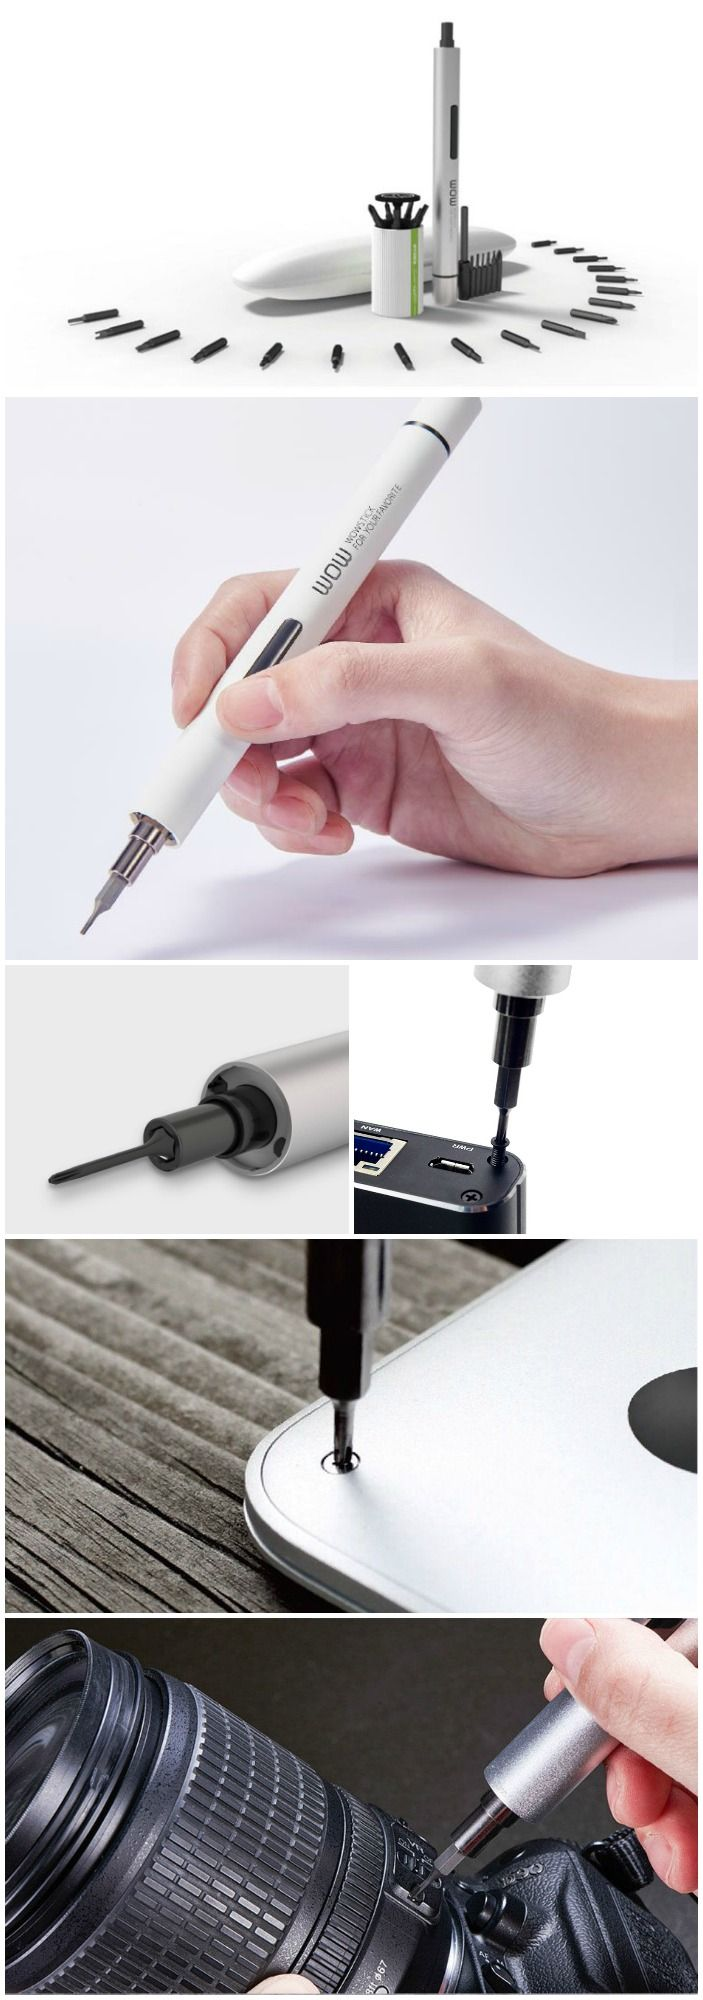 The Wowstick is the first-of-its-kind portable cordless precision screwdriver perfect for home appliances, electronics…